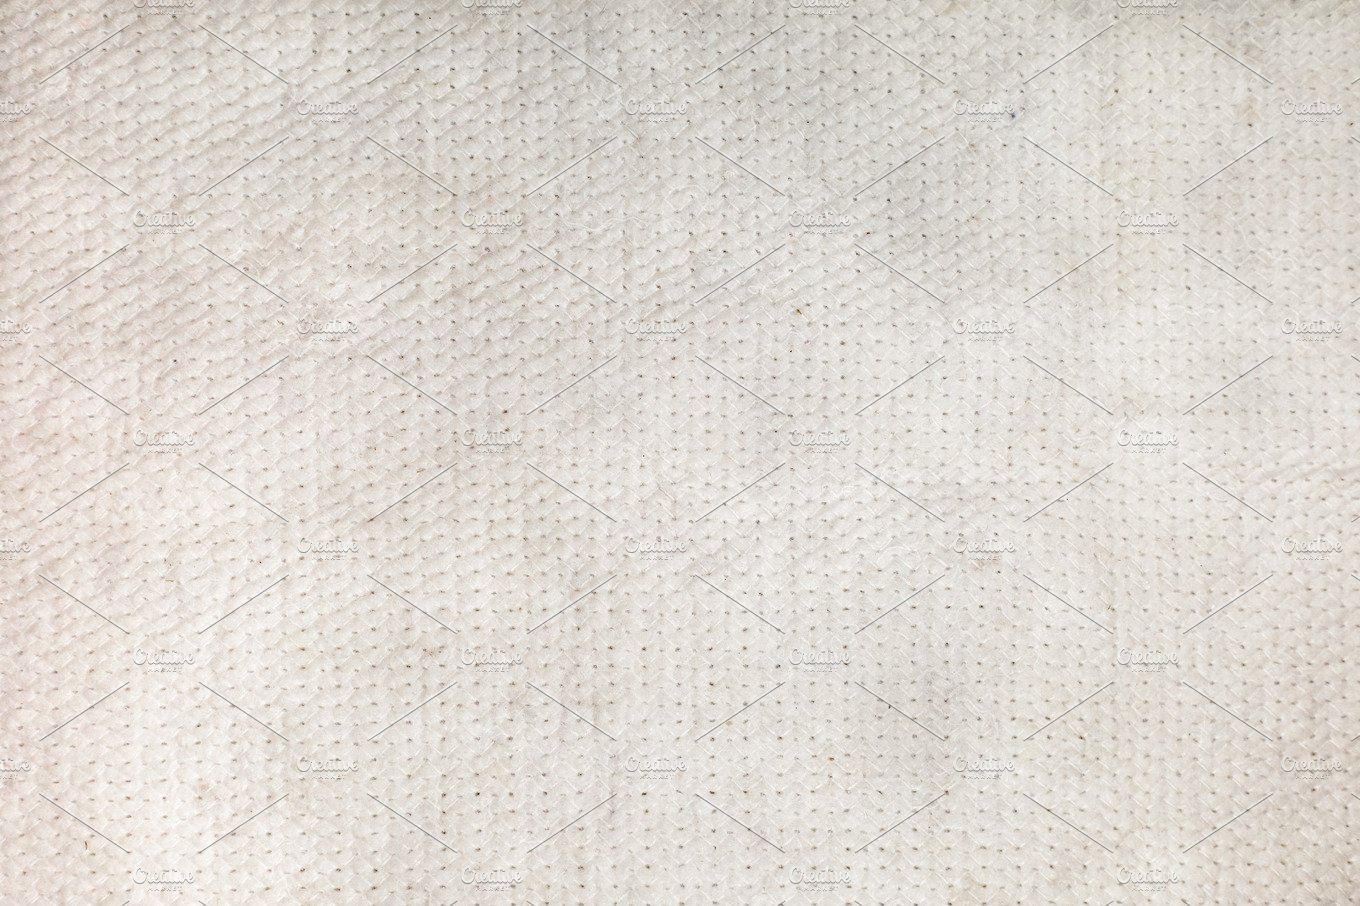 White Wool Rag Texture Background ~ Abstract Photos ...